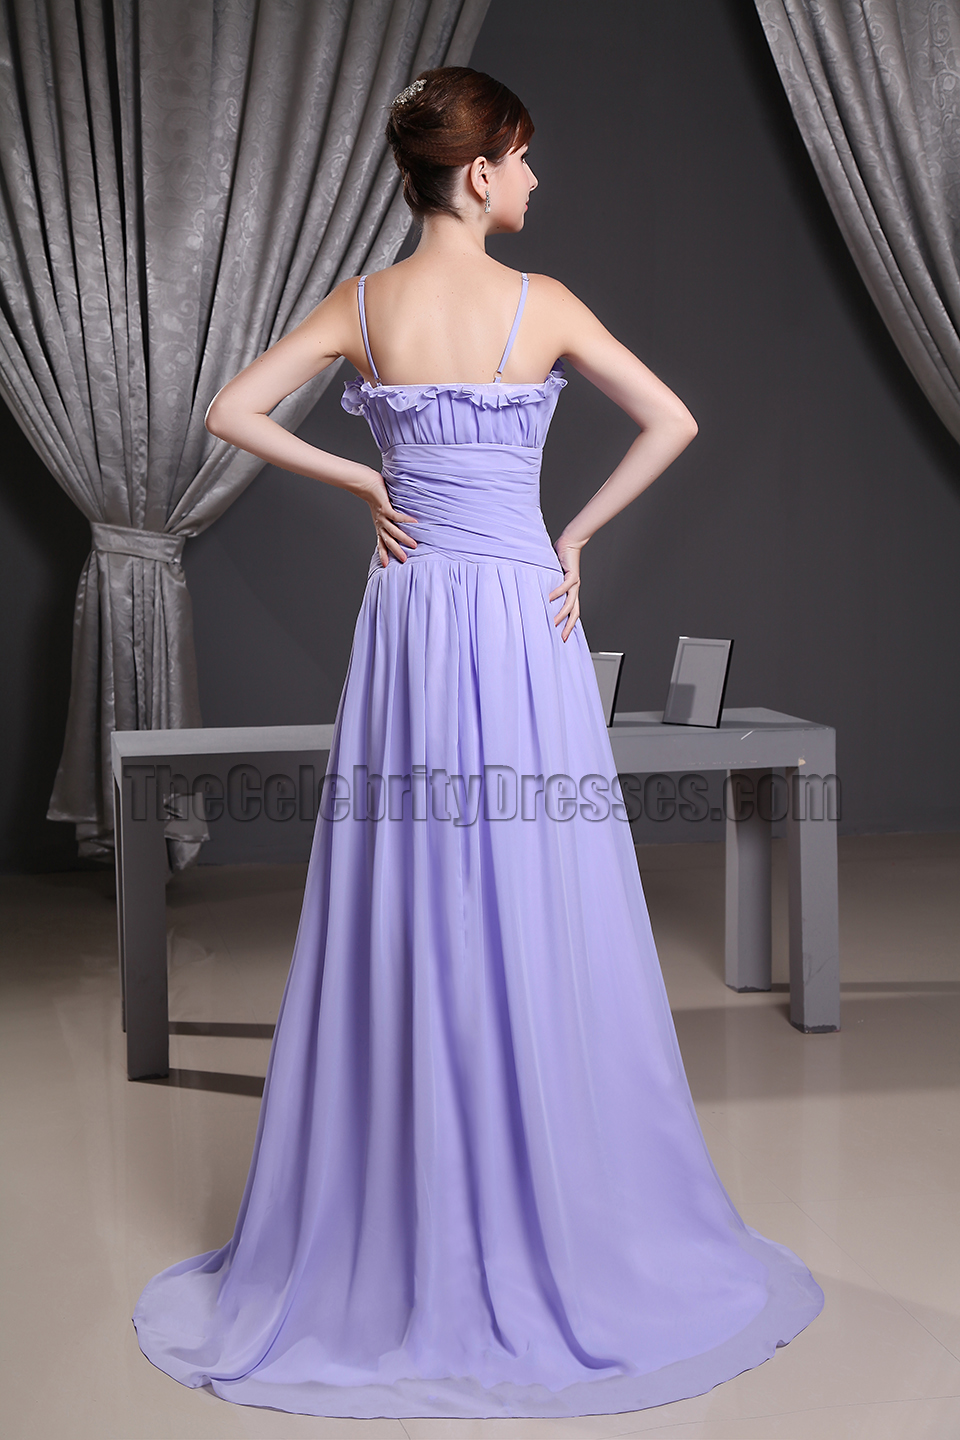 Long Formal Dance Dresses and Formal Gowns. A long formal dress is an essential part of any formal-wear wardrobe. Check out PromGirl's selection of formal dresses for your next prom, Quinceanera, homecoming, sweet 16, or any other special event.